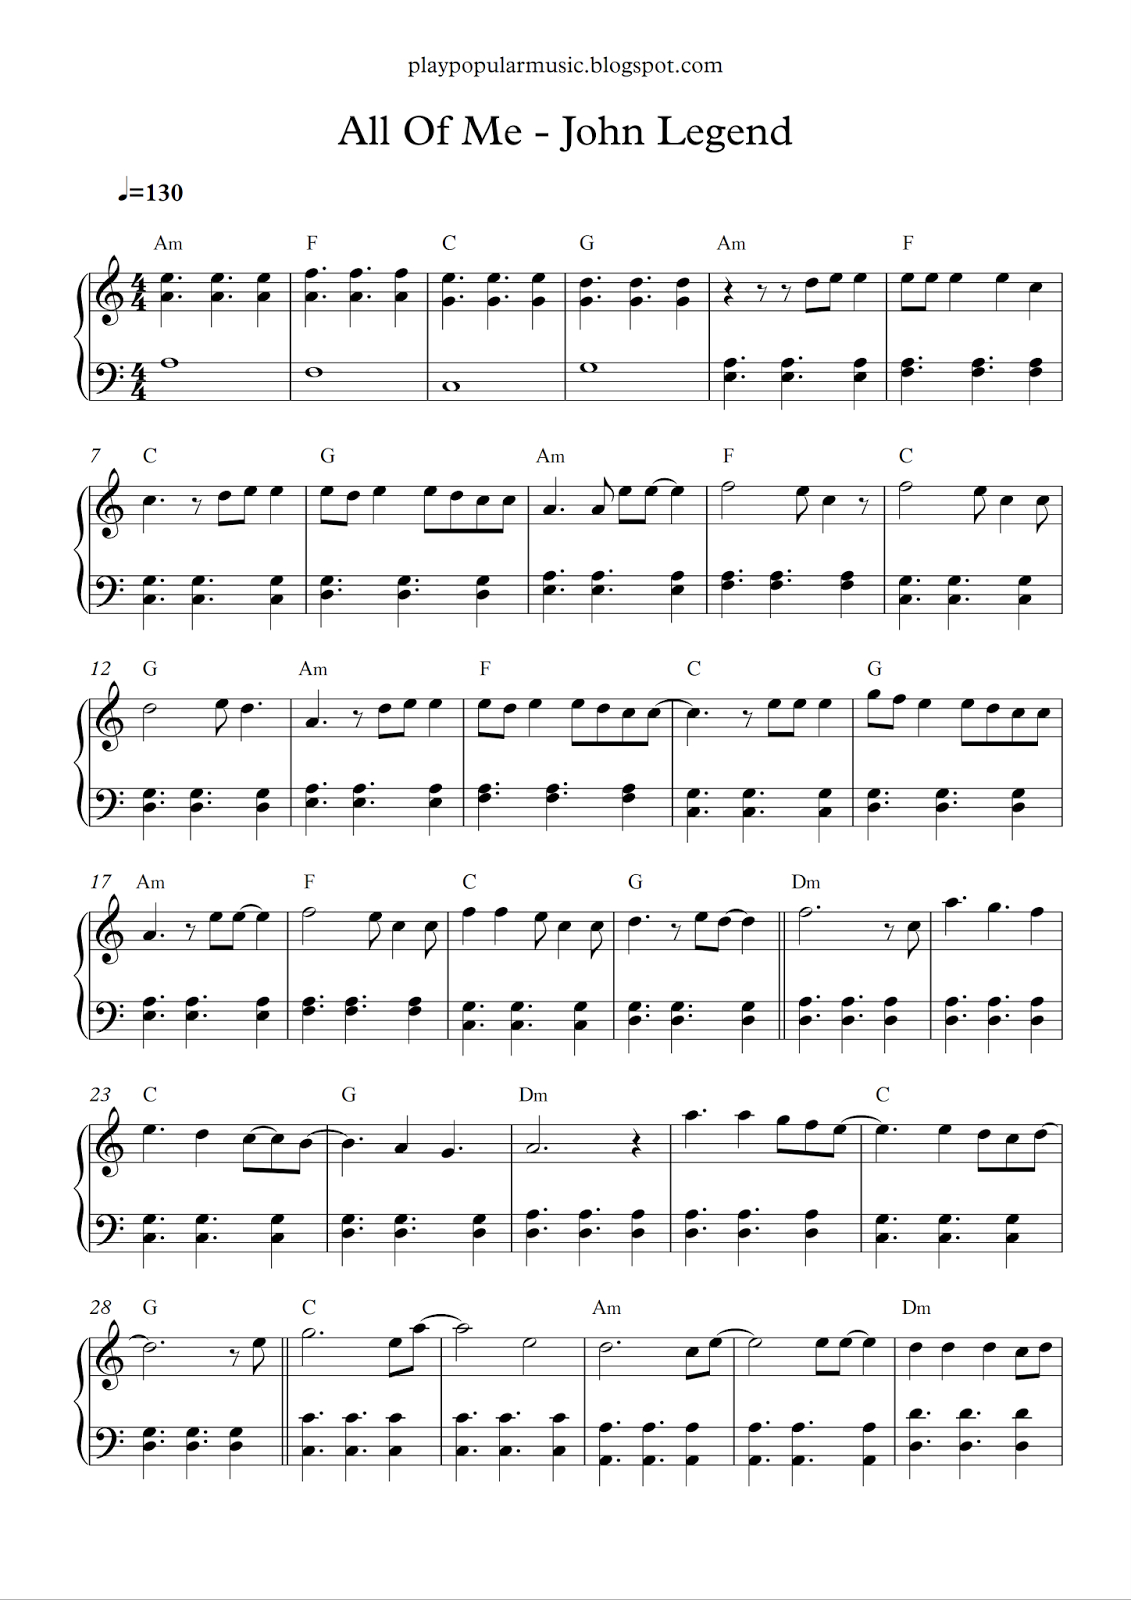 Free Piano Sheet Music: All Of Me - John Legend.pdf What's Going On - Free Piano Sheet Music Online Printable Popular Songs